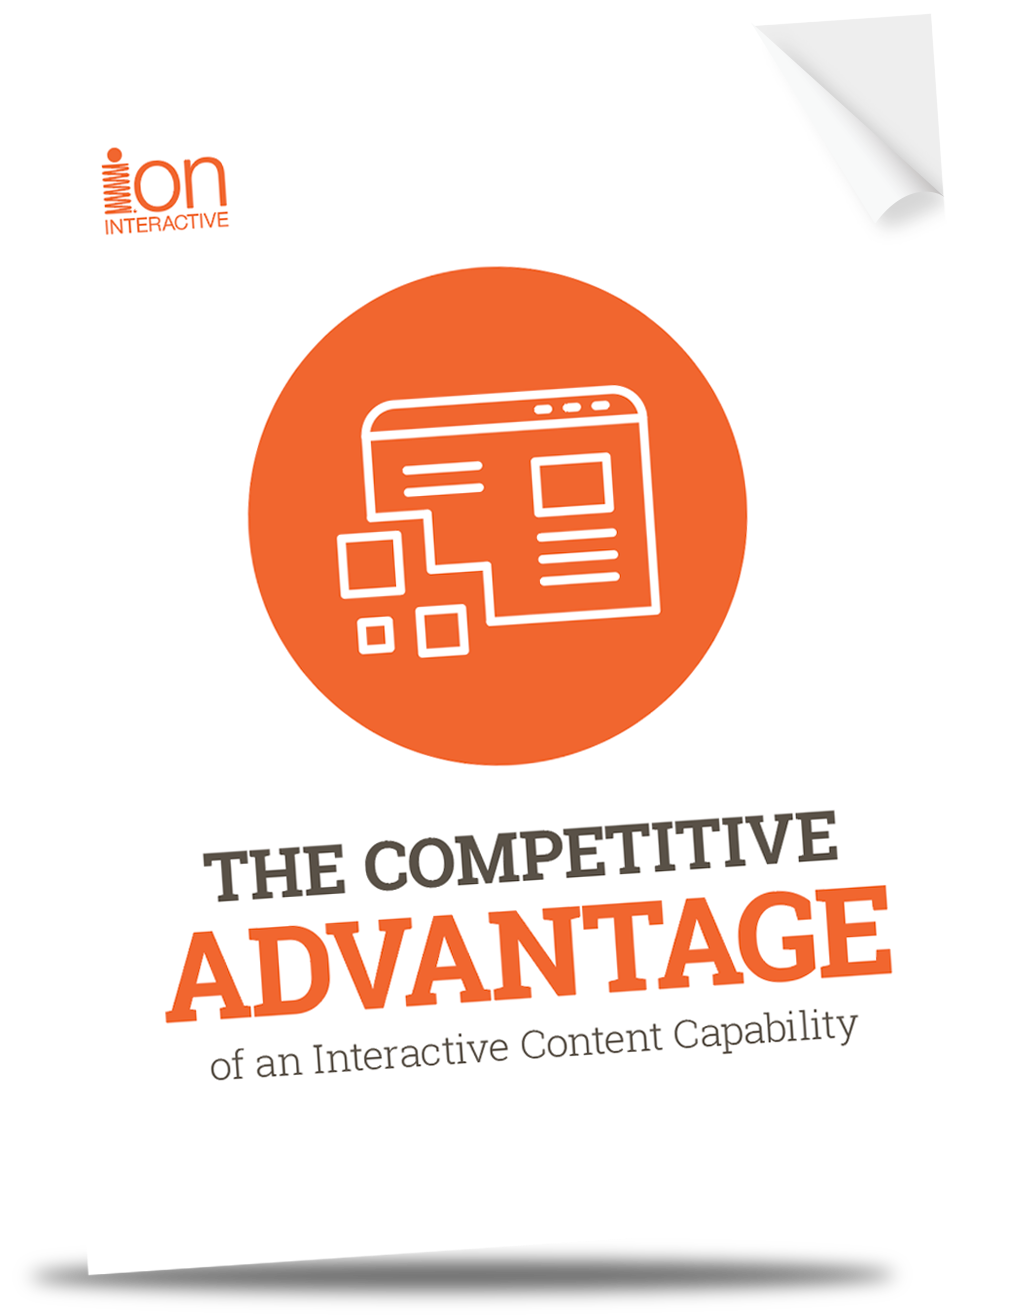 ion - The Competitive Advantage